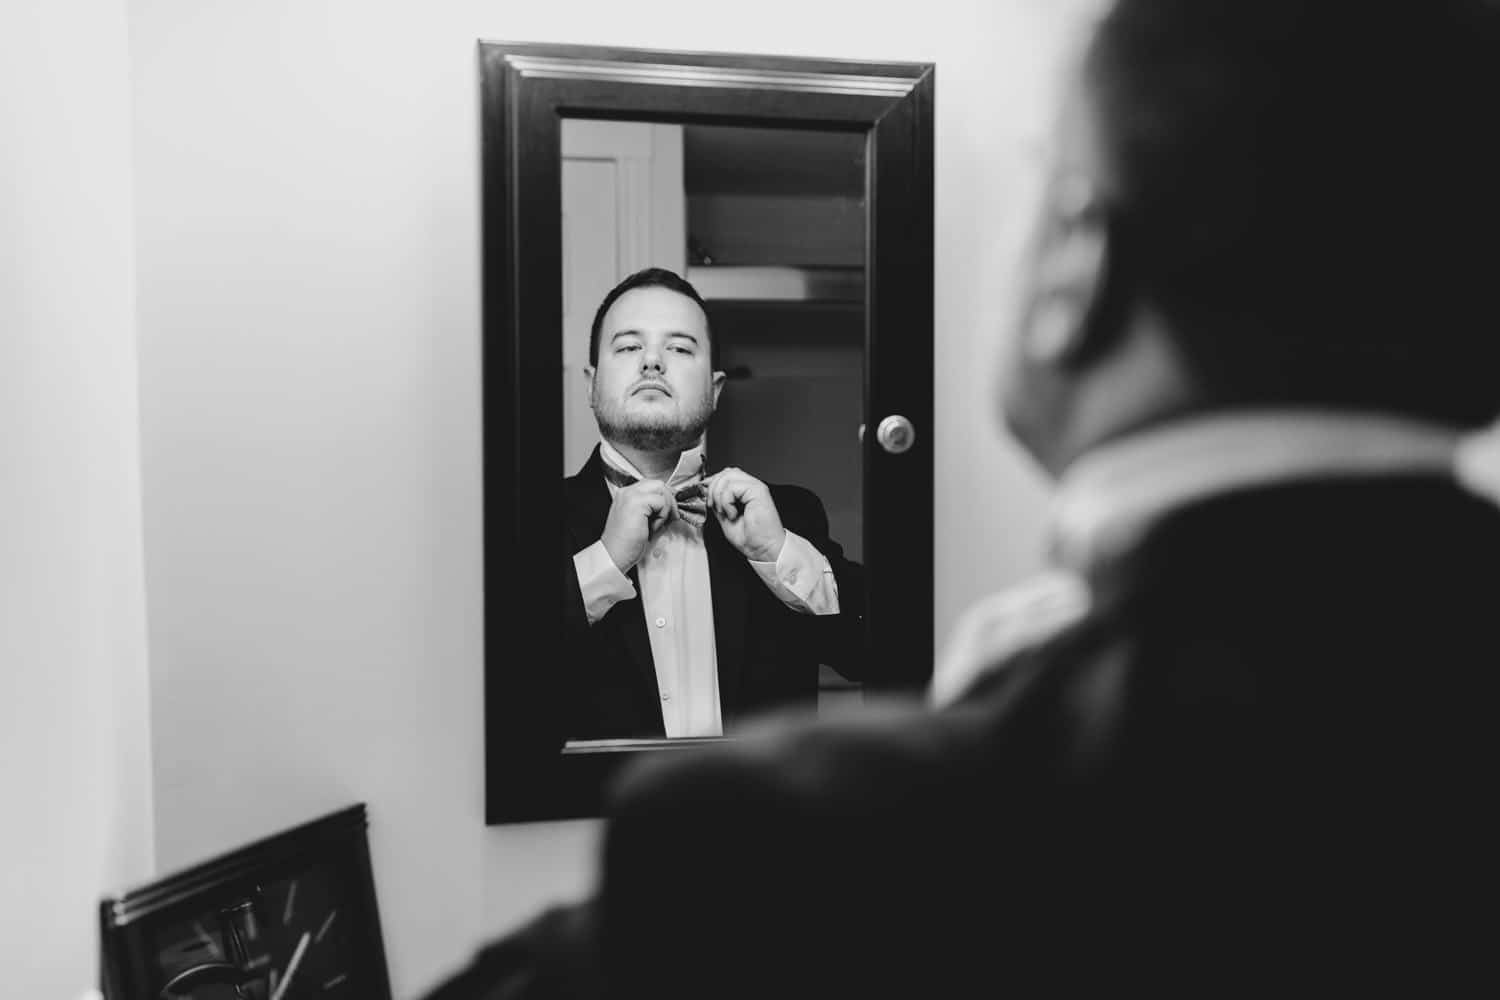 groom adjusts his bow tie in a mirror